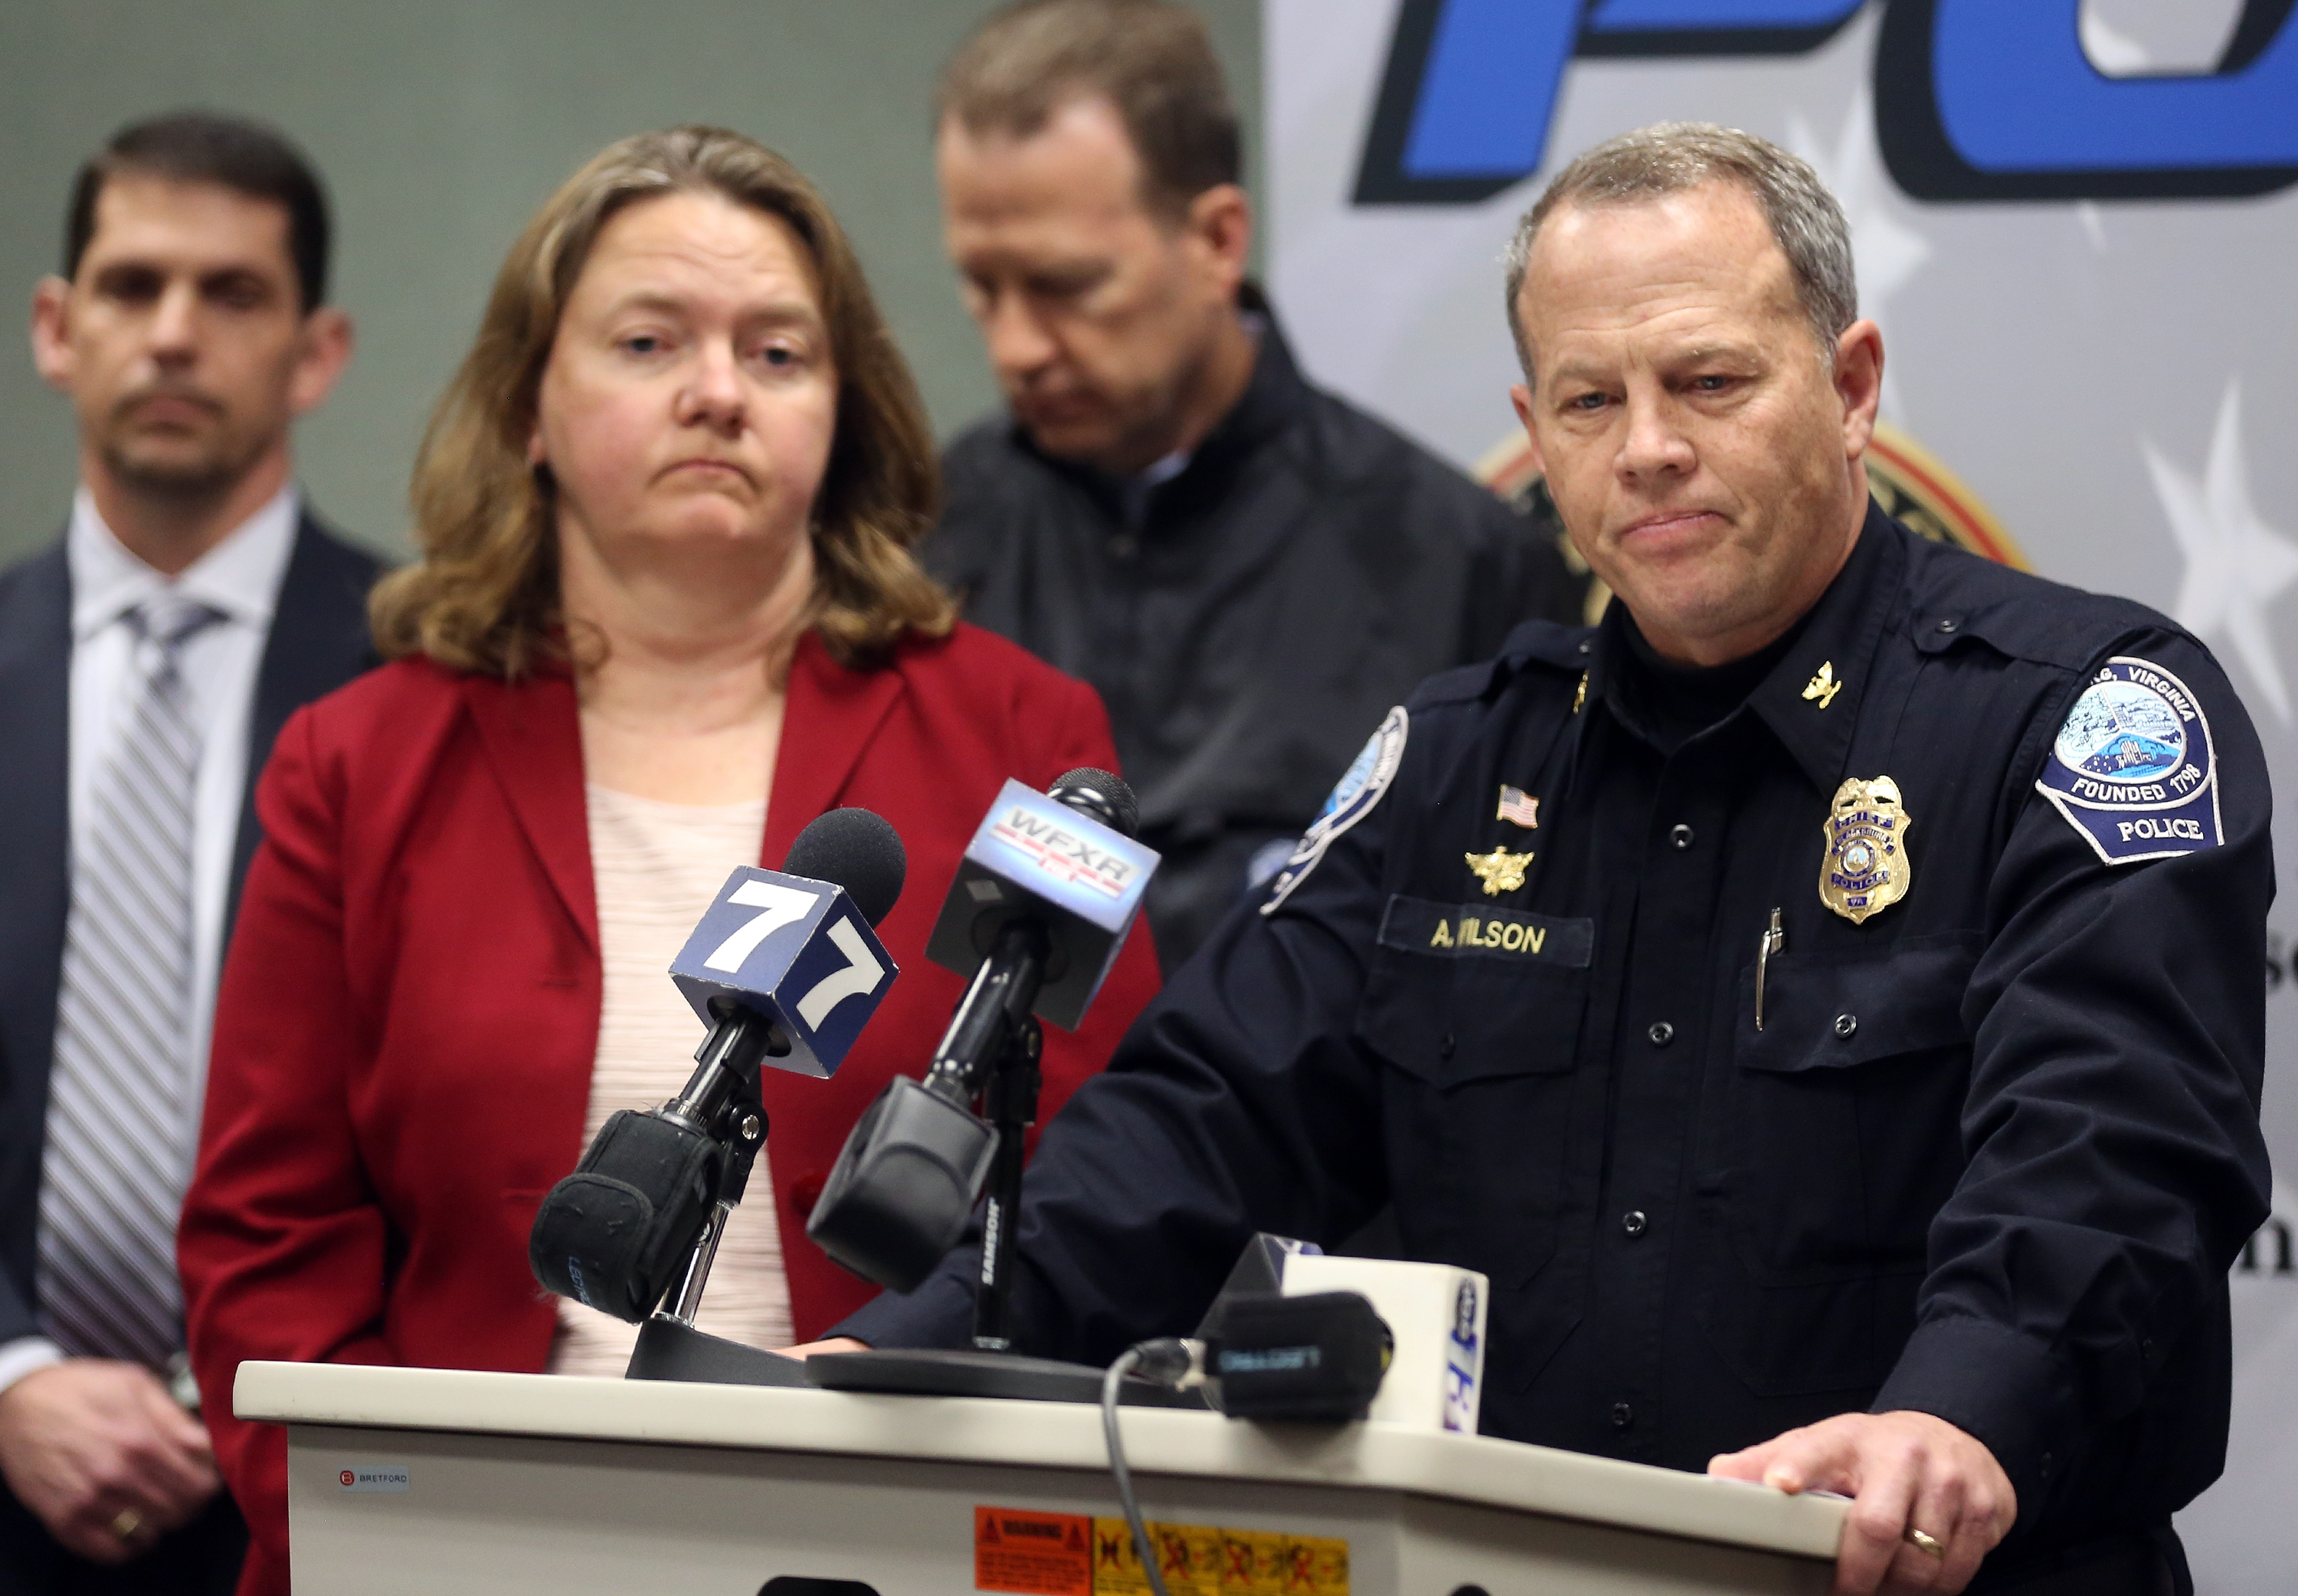 Montgomery County Commonwealth's Attorney Mary Pettitt (L) and Blacksburg Police Chief Anthony Wilson at a news conference in Blacksburg Va. on Jan. 30, 2016.